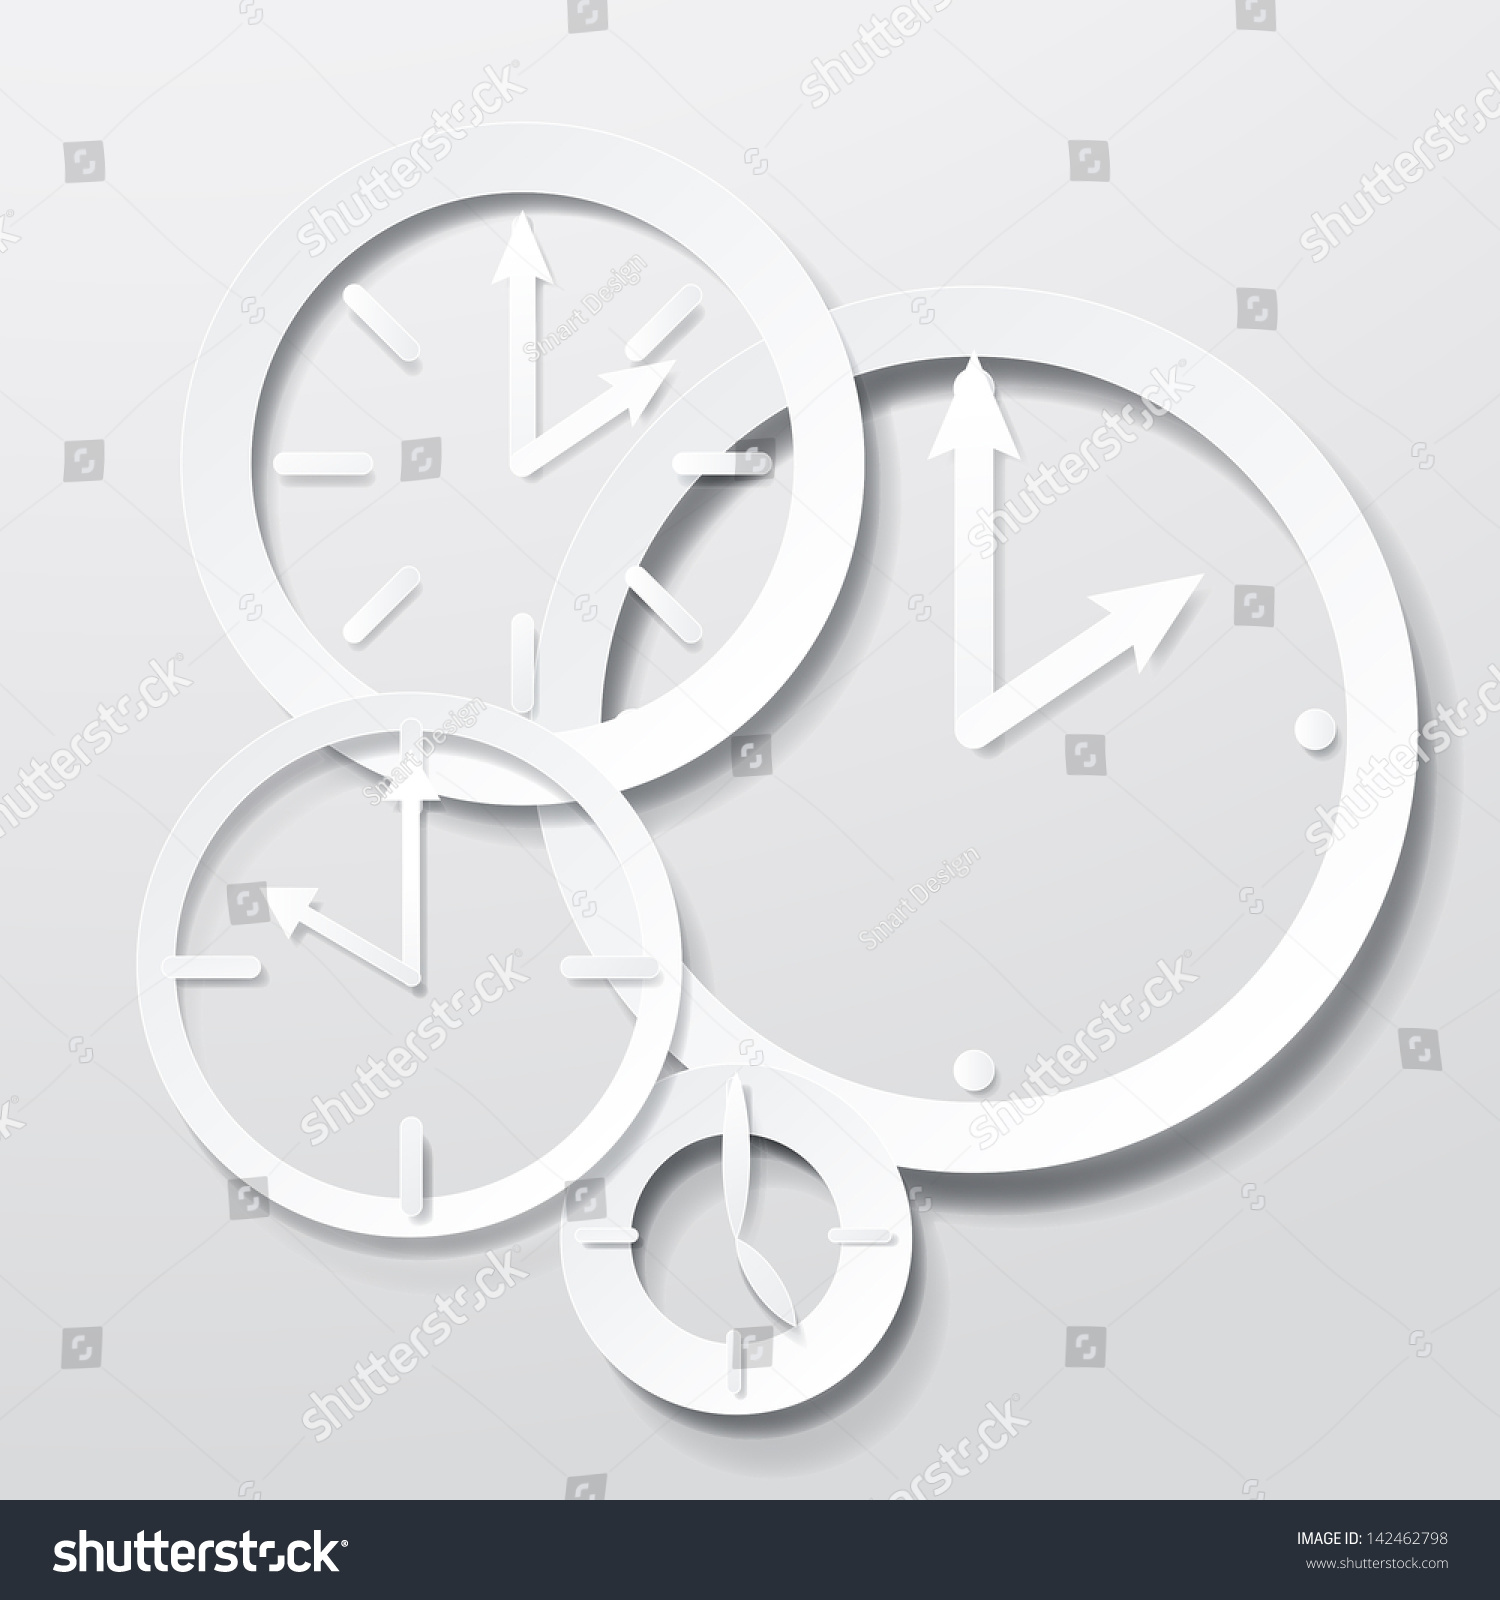 3d Paper Clock Icons Set Isolated Stock Vector 142462798 ...